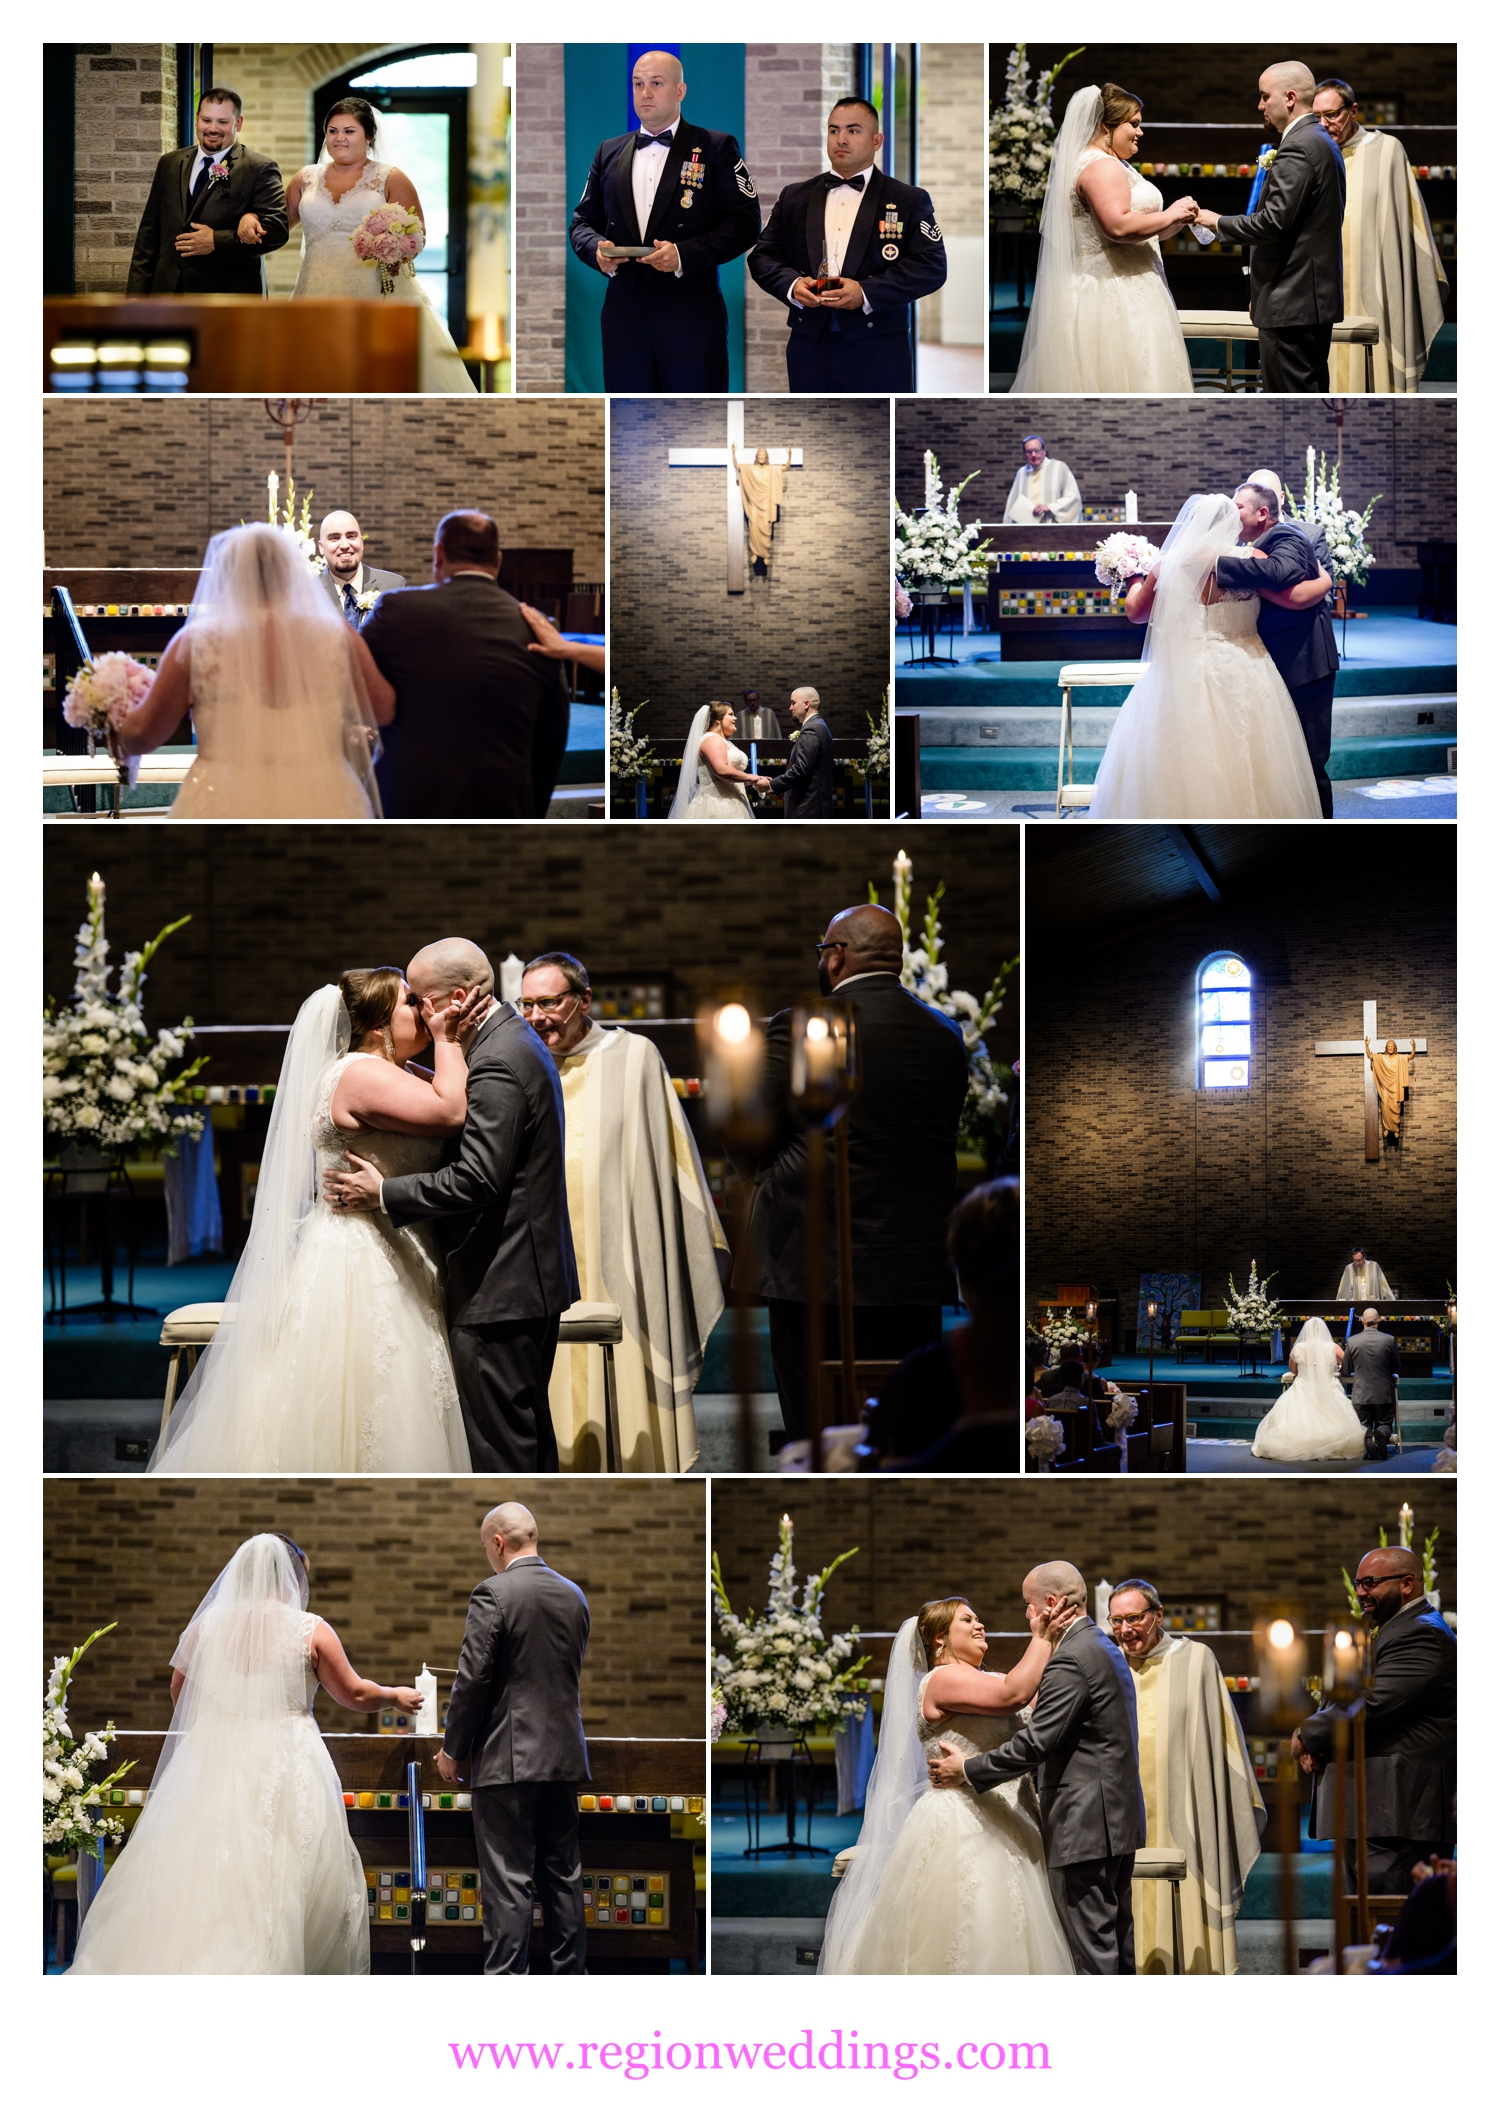 Wedding ceremony at St. Maria Goretti Church in Dyer, Indiana.